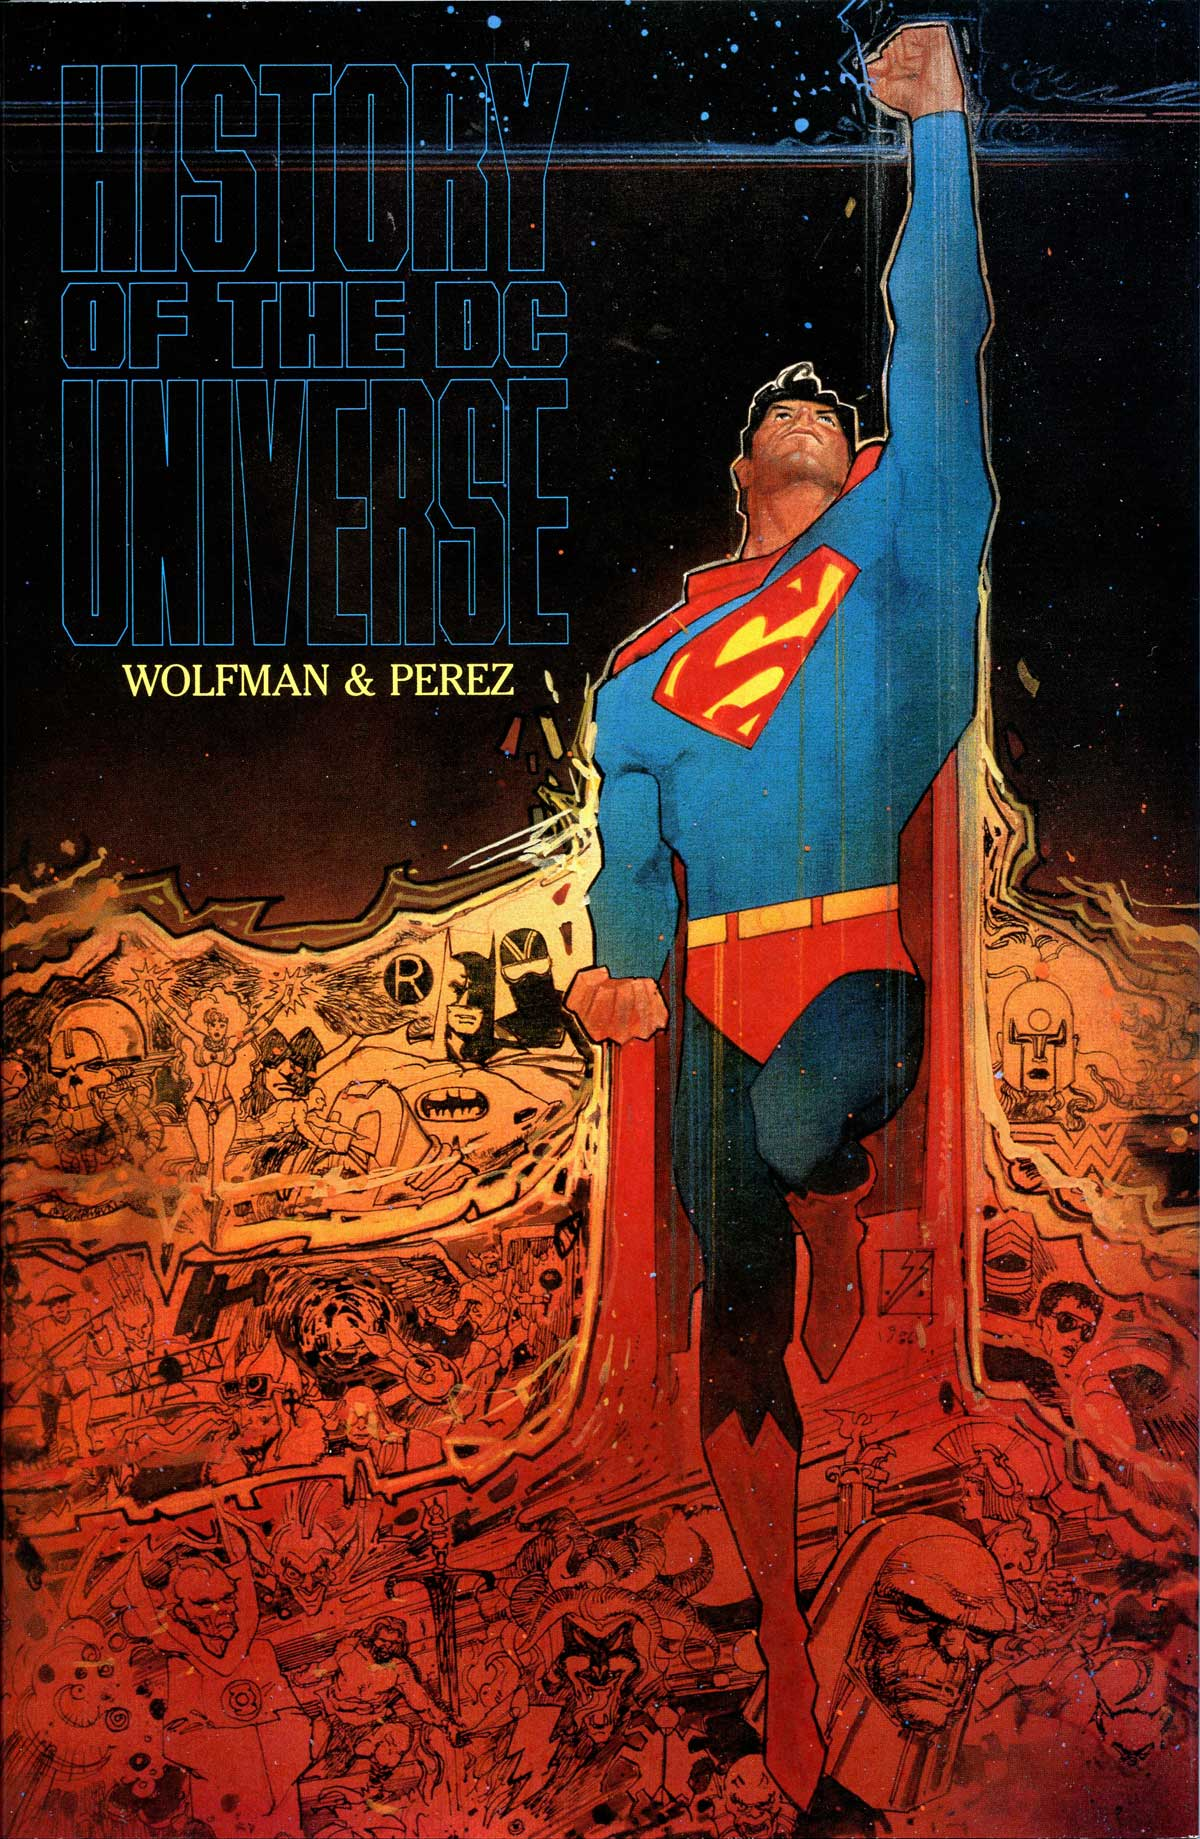 History of the DC Universe Hardcover by Bill Sienkiewicz